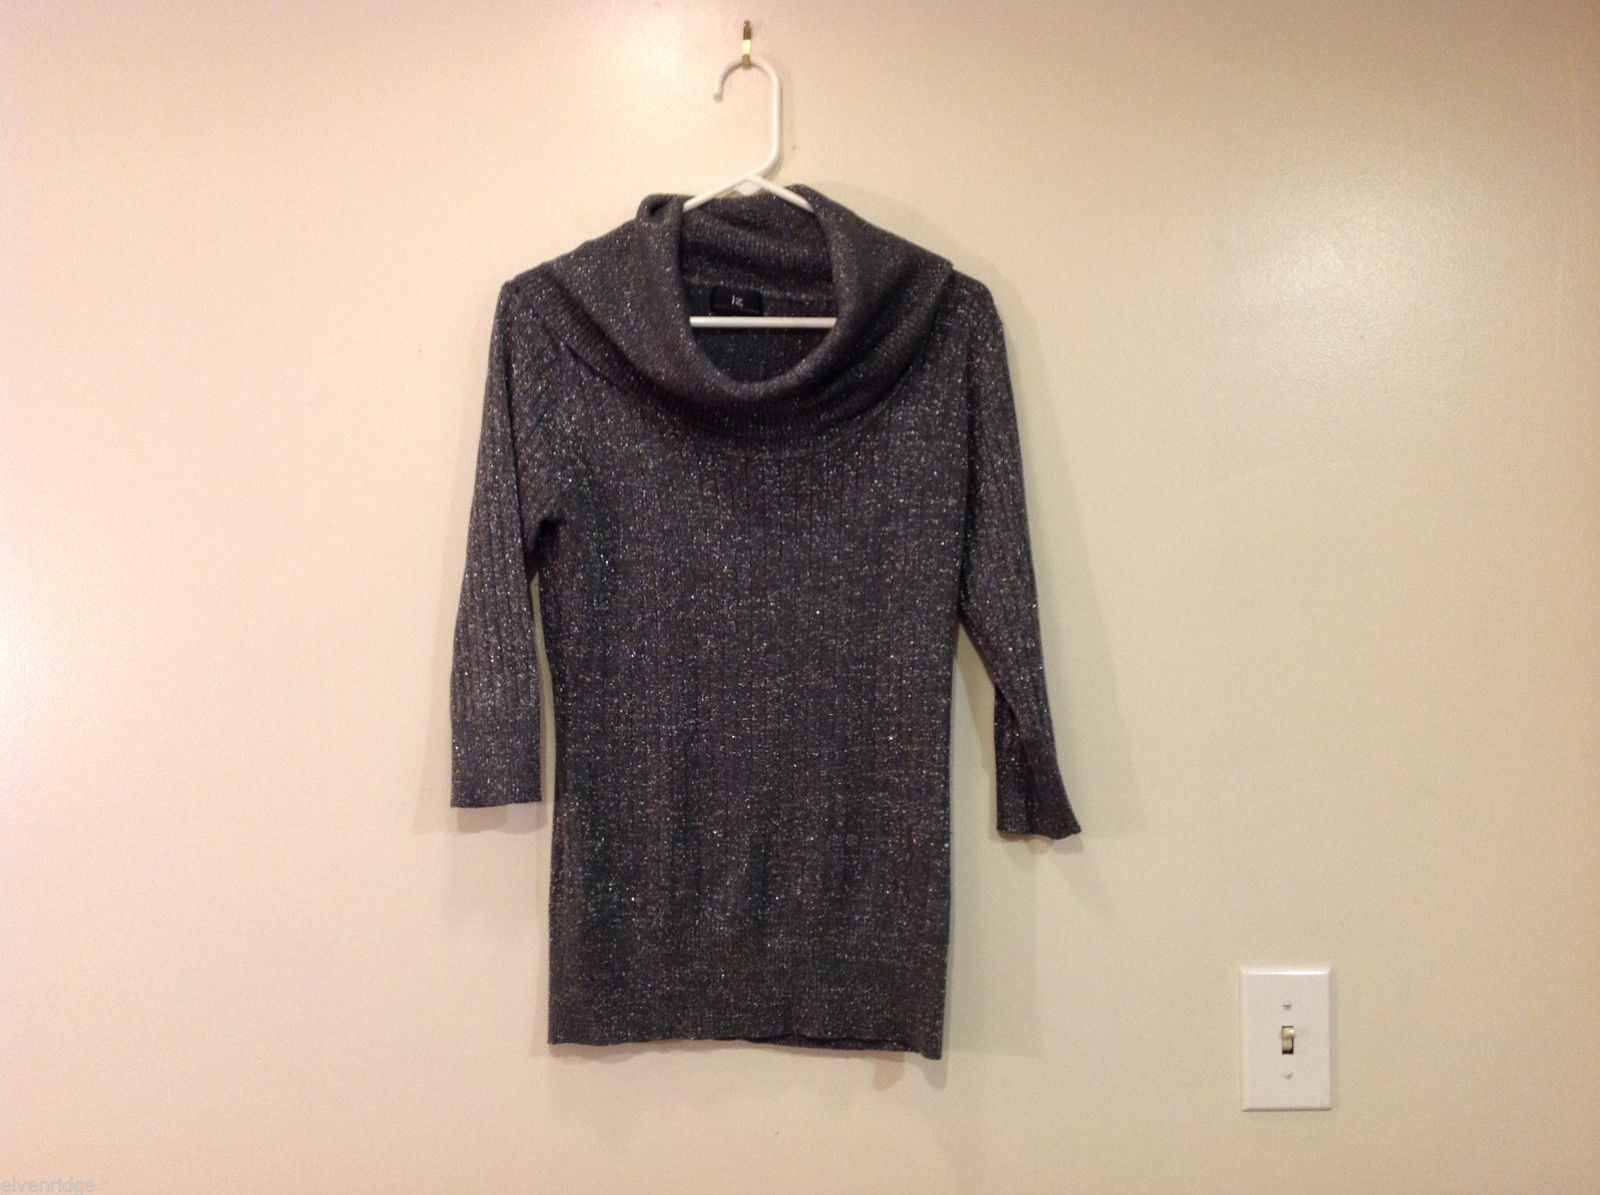 IZ Slouch Cowl Neck Gray Metallic Sweater, 3/4 sleeve, size XL